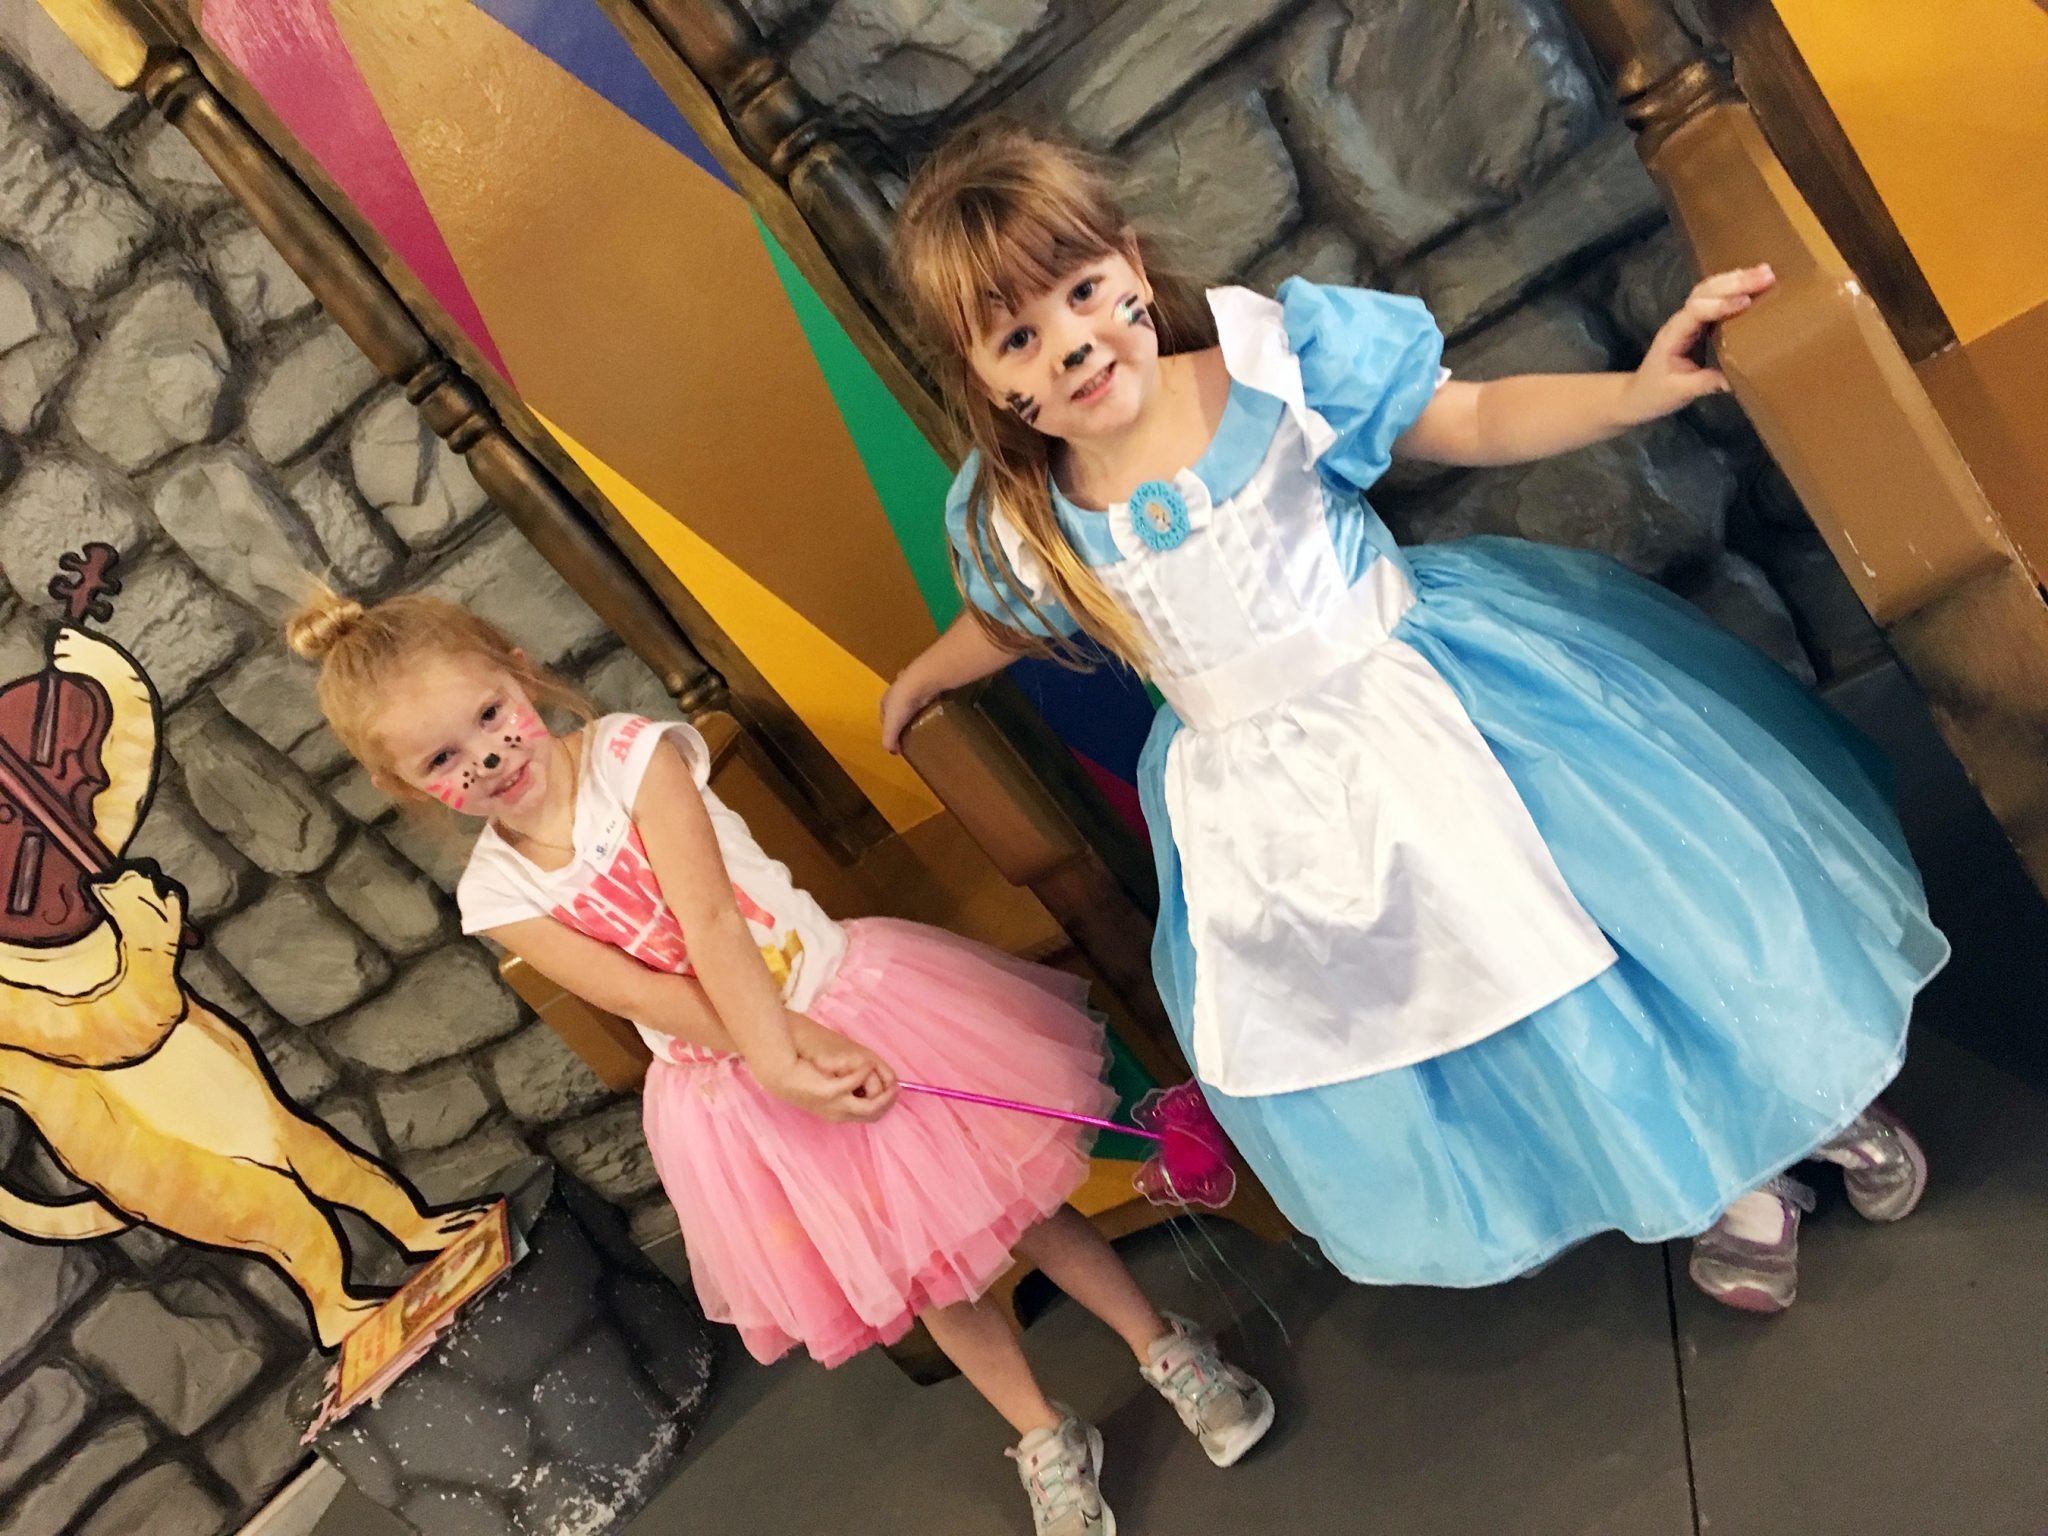 Young Visitors Can Enter Magical Wonderland at The Woodlands Children's Museum — Mad Hatter Tea Party set for Friday, Oct. 5